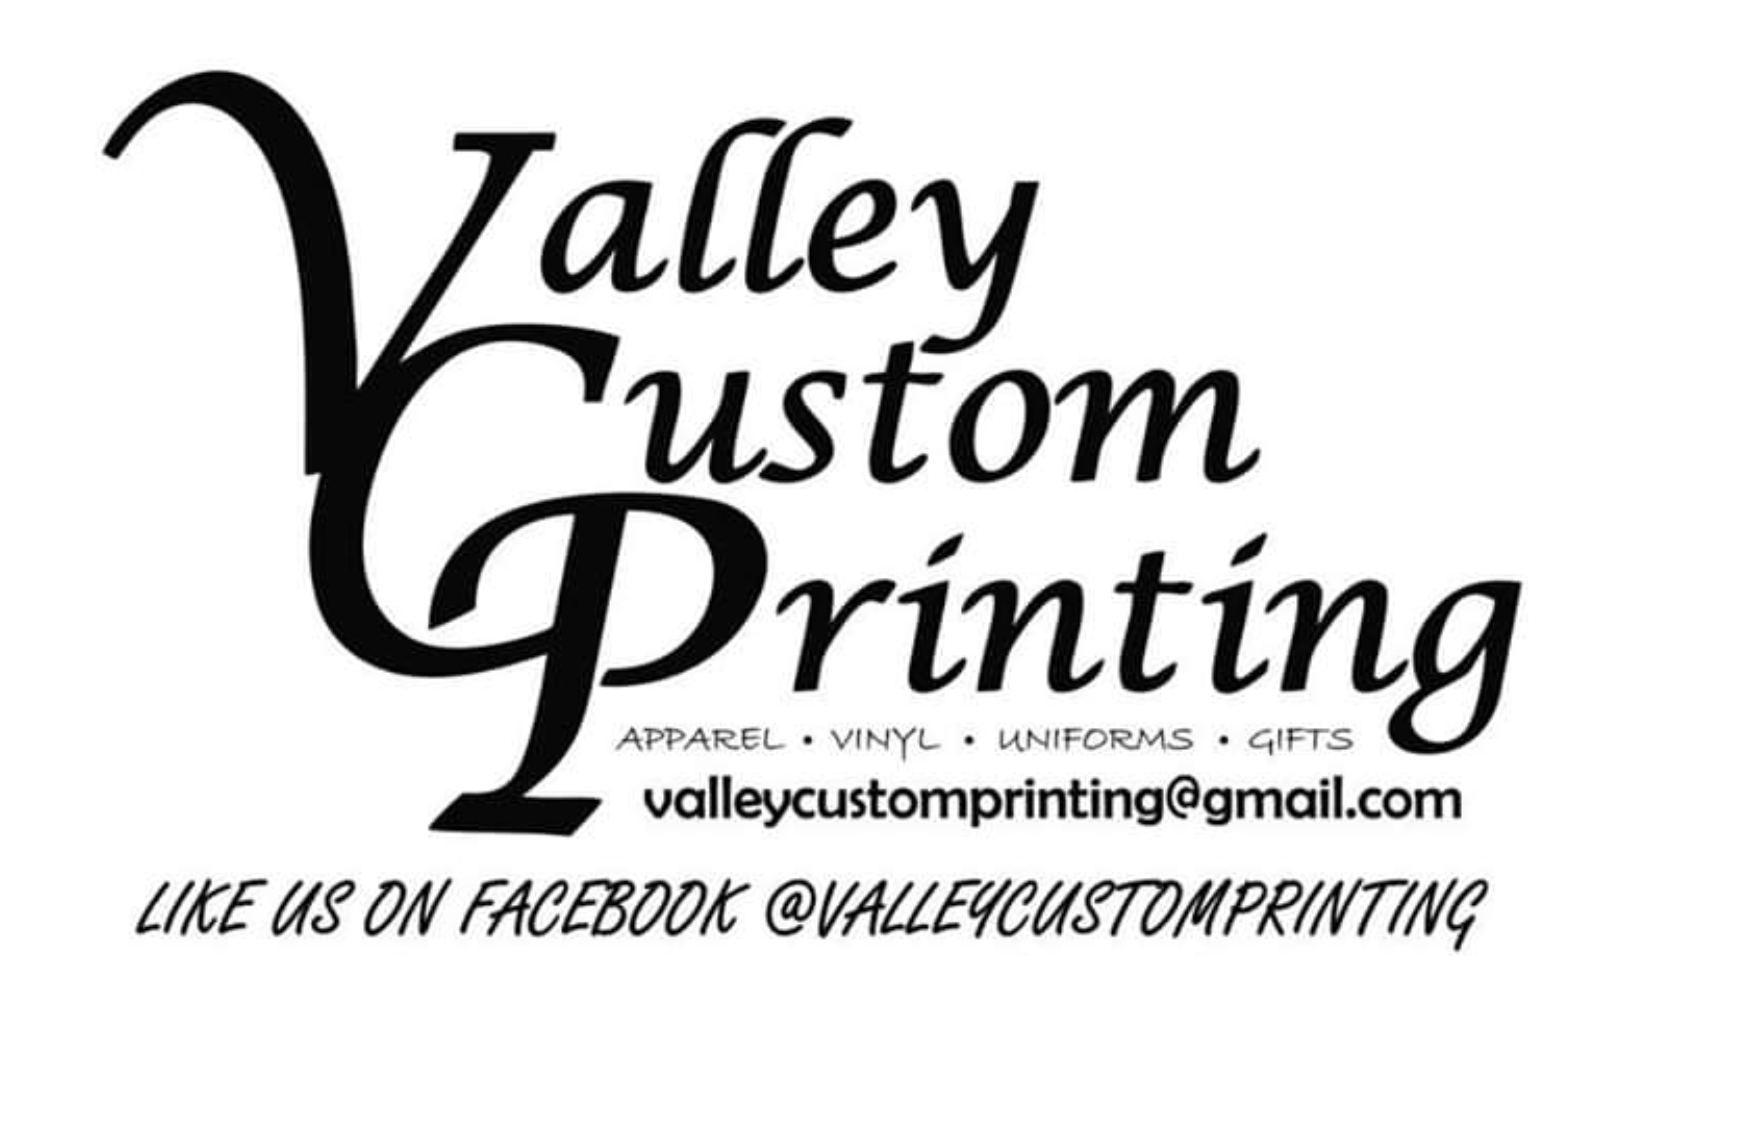 Valley Custom Printing